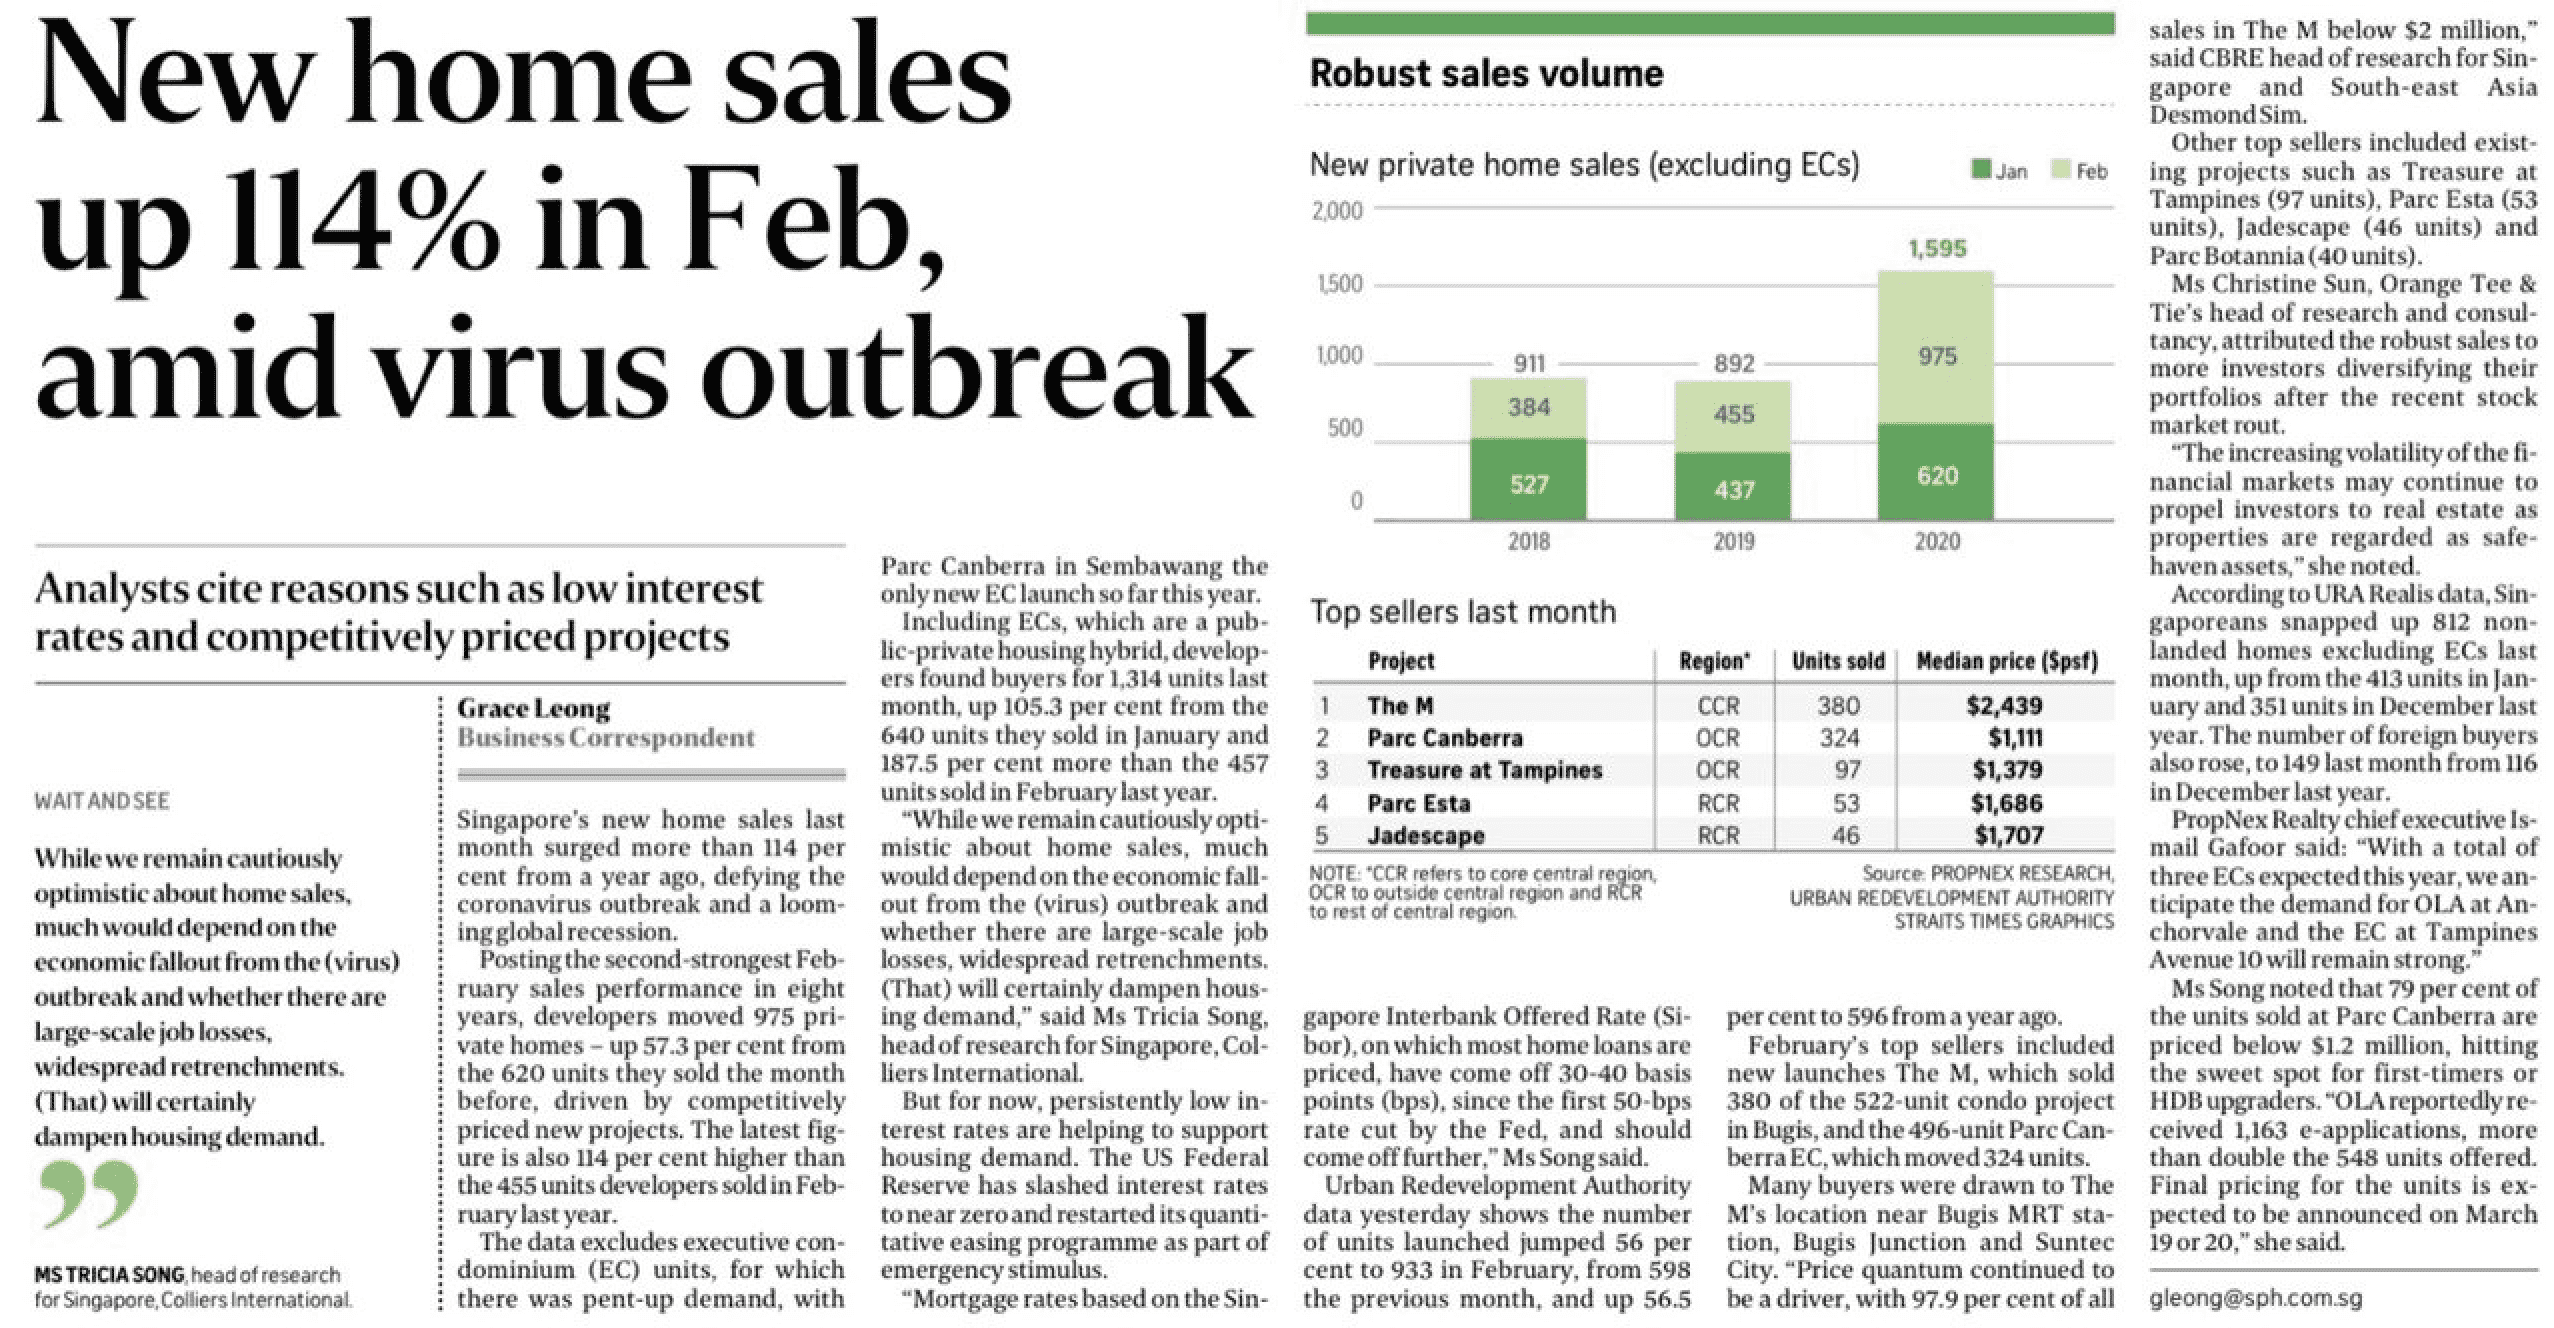 New-home-sales-up-114-in-Feb amid virus outbreak